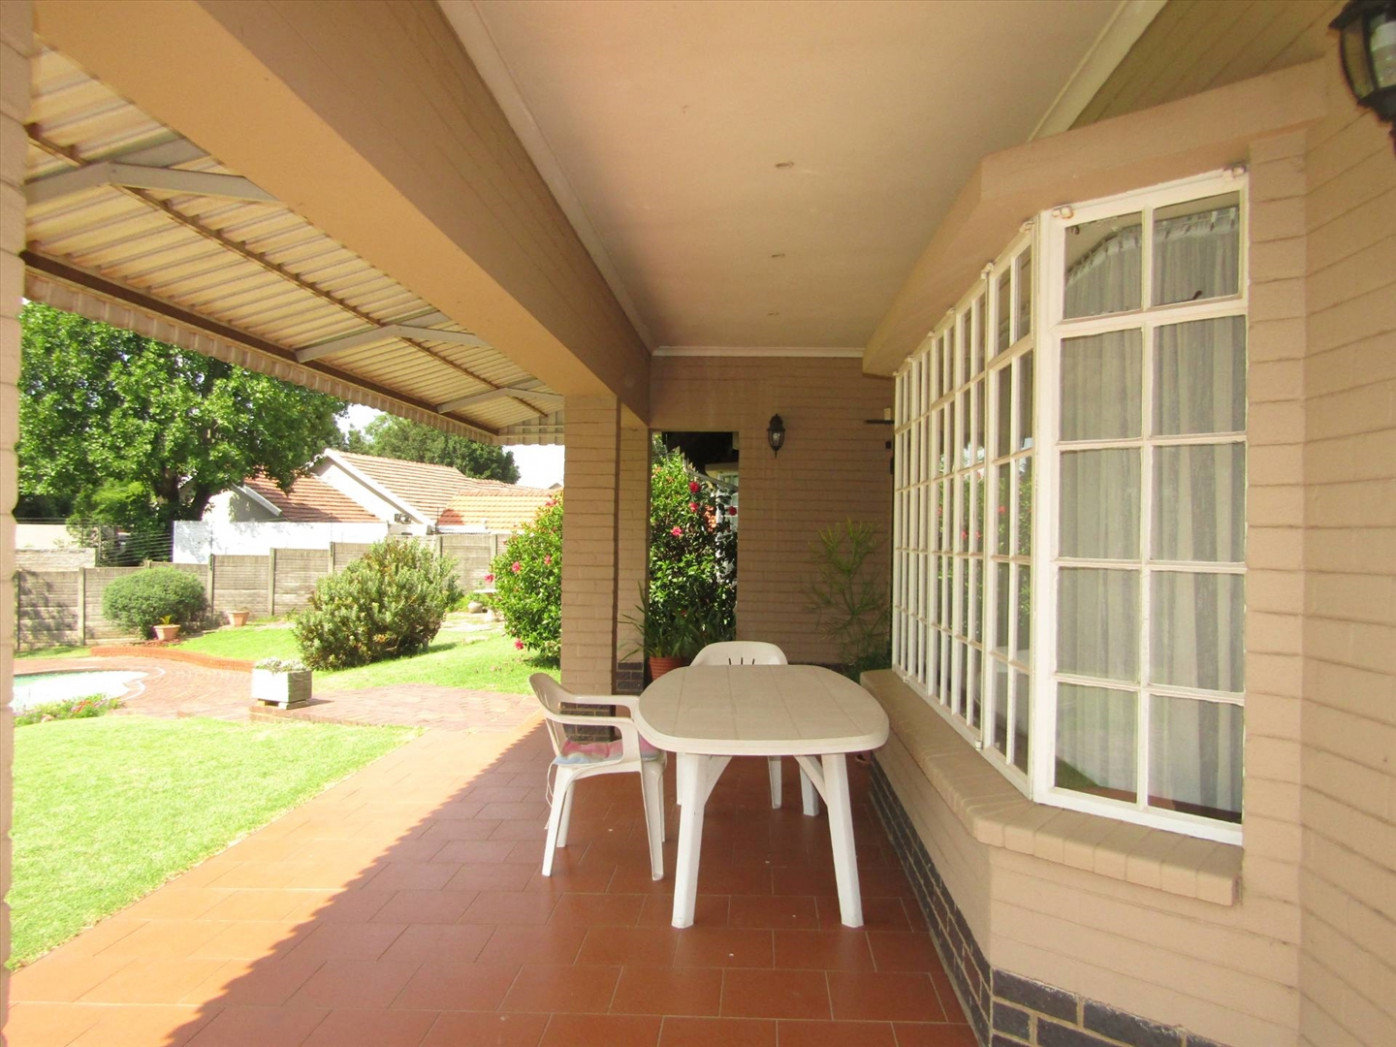 8 Bedroom House In Glenhazel, Johannesburg For Sale For R 8,8,8 #1858171 Wooden Carports Johannesburg